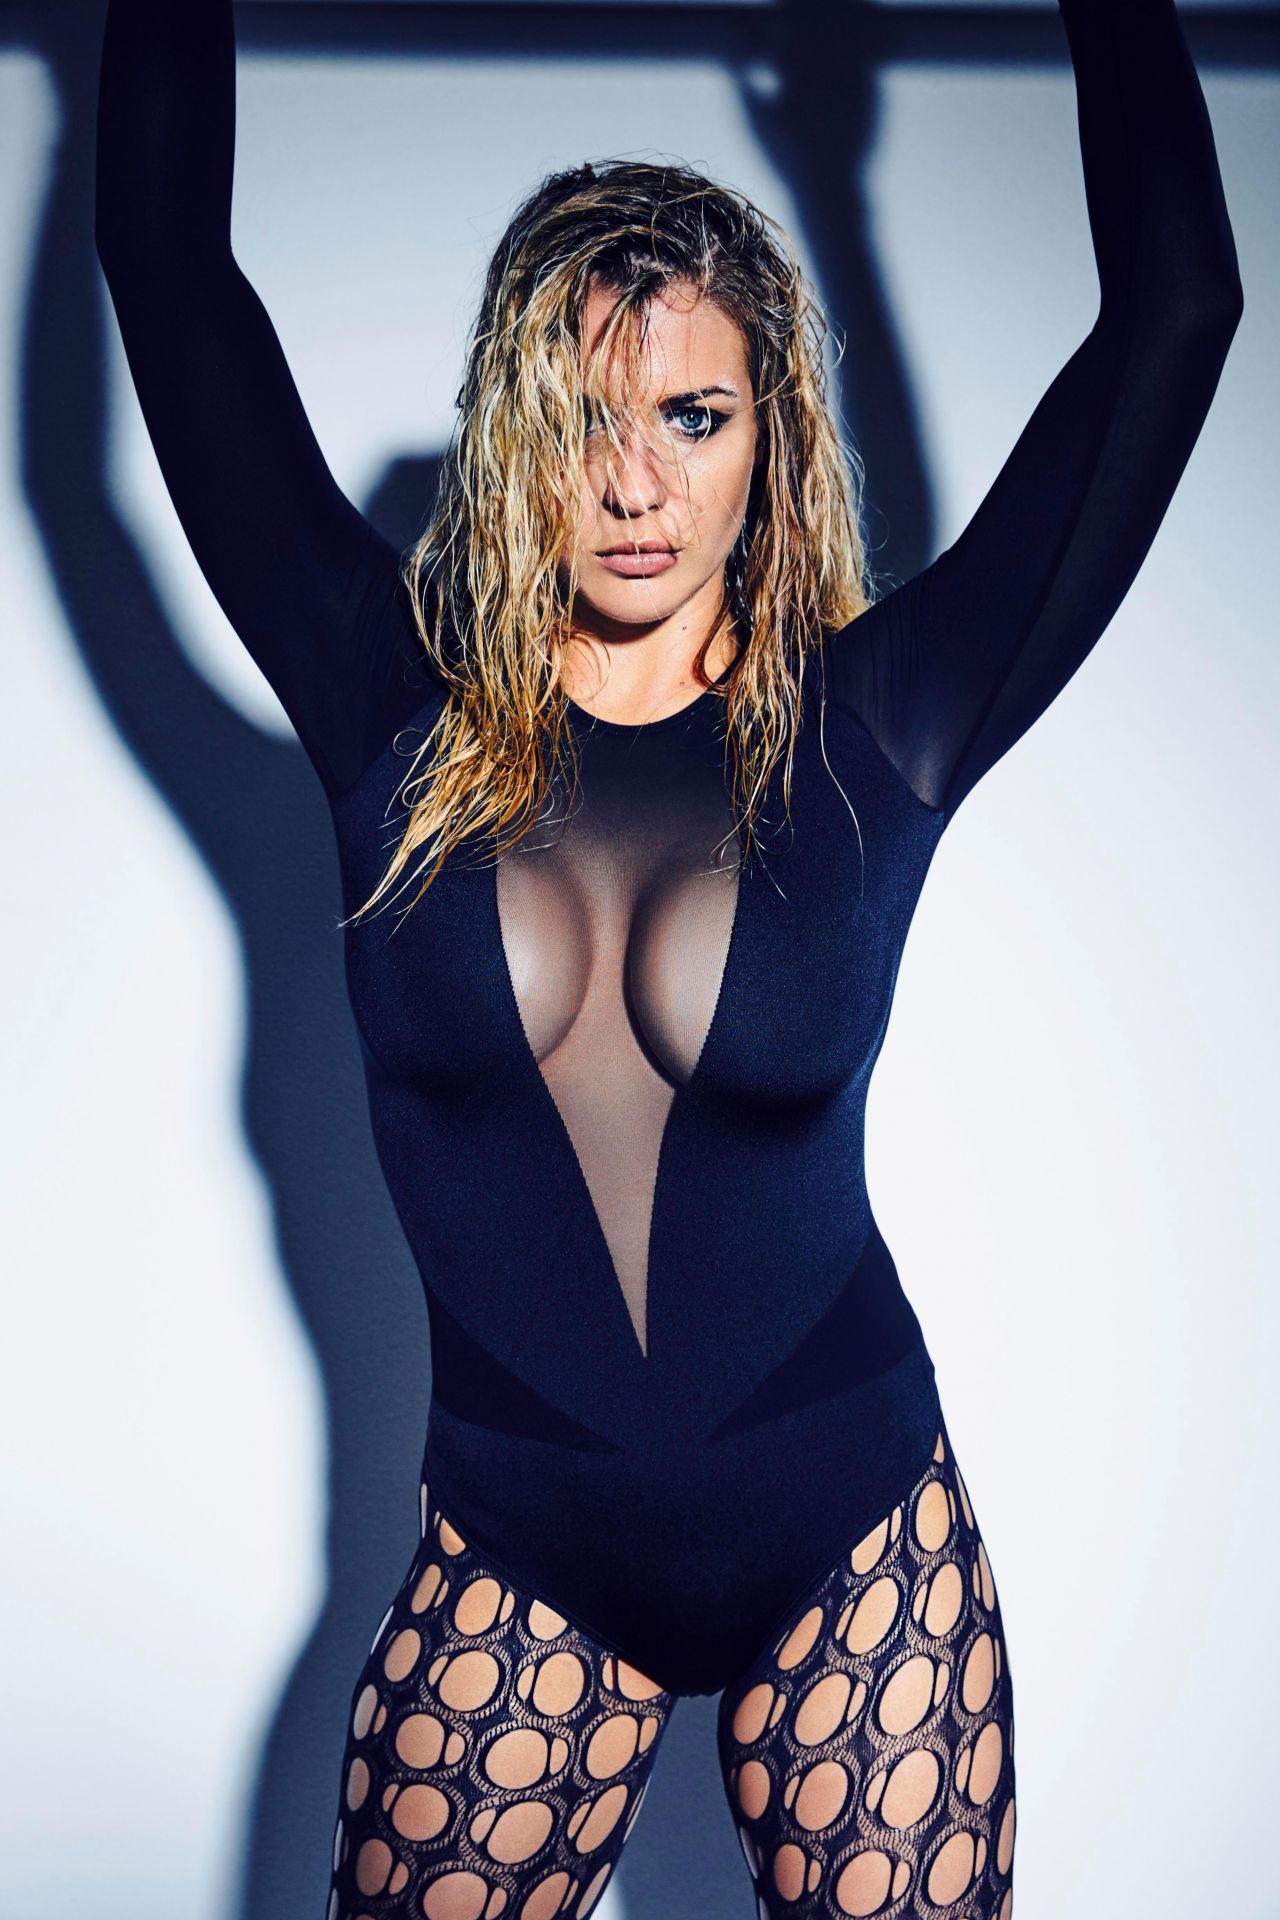 Naked Pictures Of Gemma Atkinson